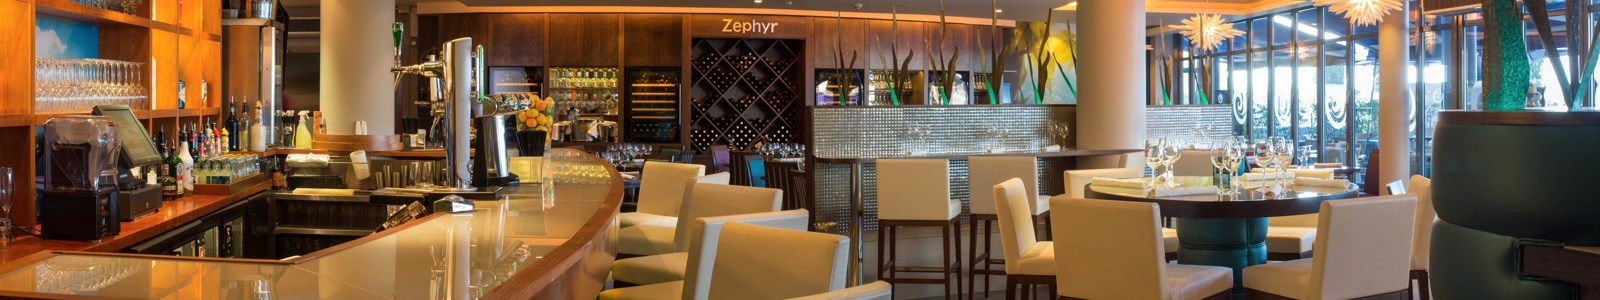 Café Zephyr at <br/>The Royal Yacht